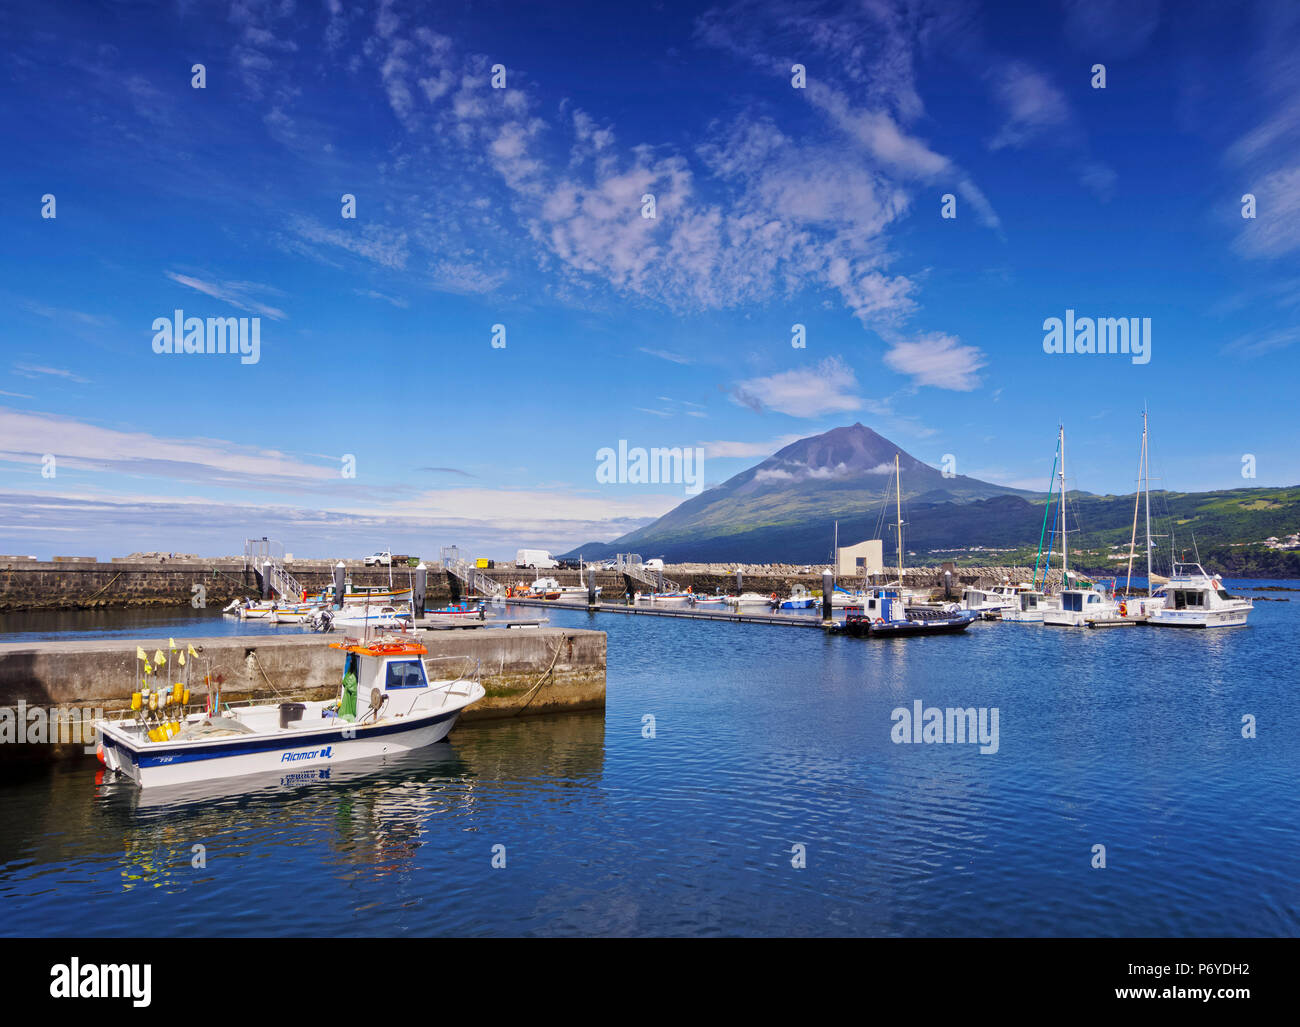 Portugal, Azores, Pico, Lajes do Pico, View of the port with Pico Mountain in the background. - Stock Image